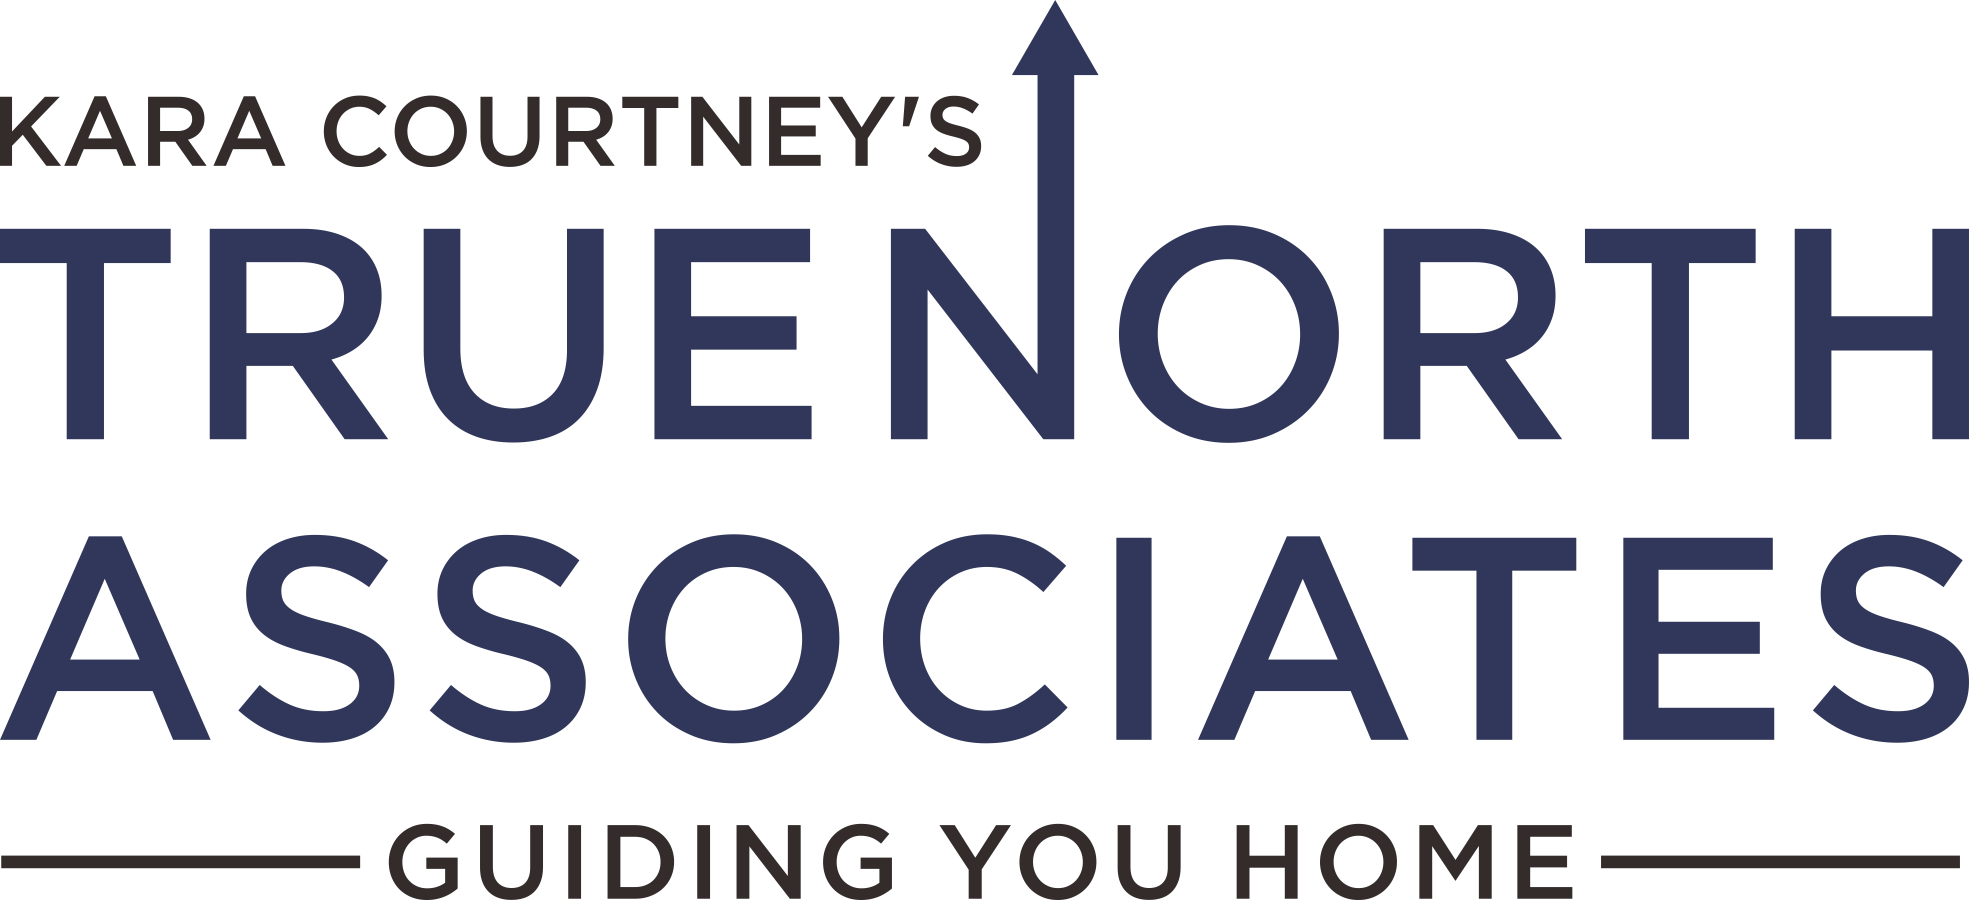 Kara Courtney's True North Associates @ Windermere Homes & Estates logo